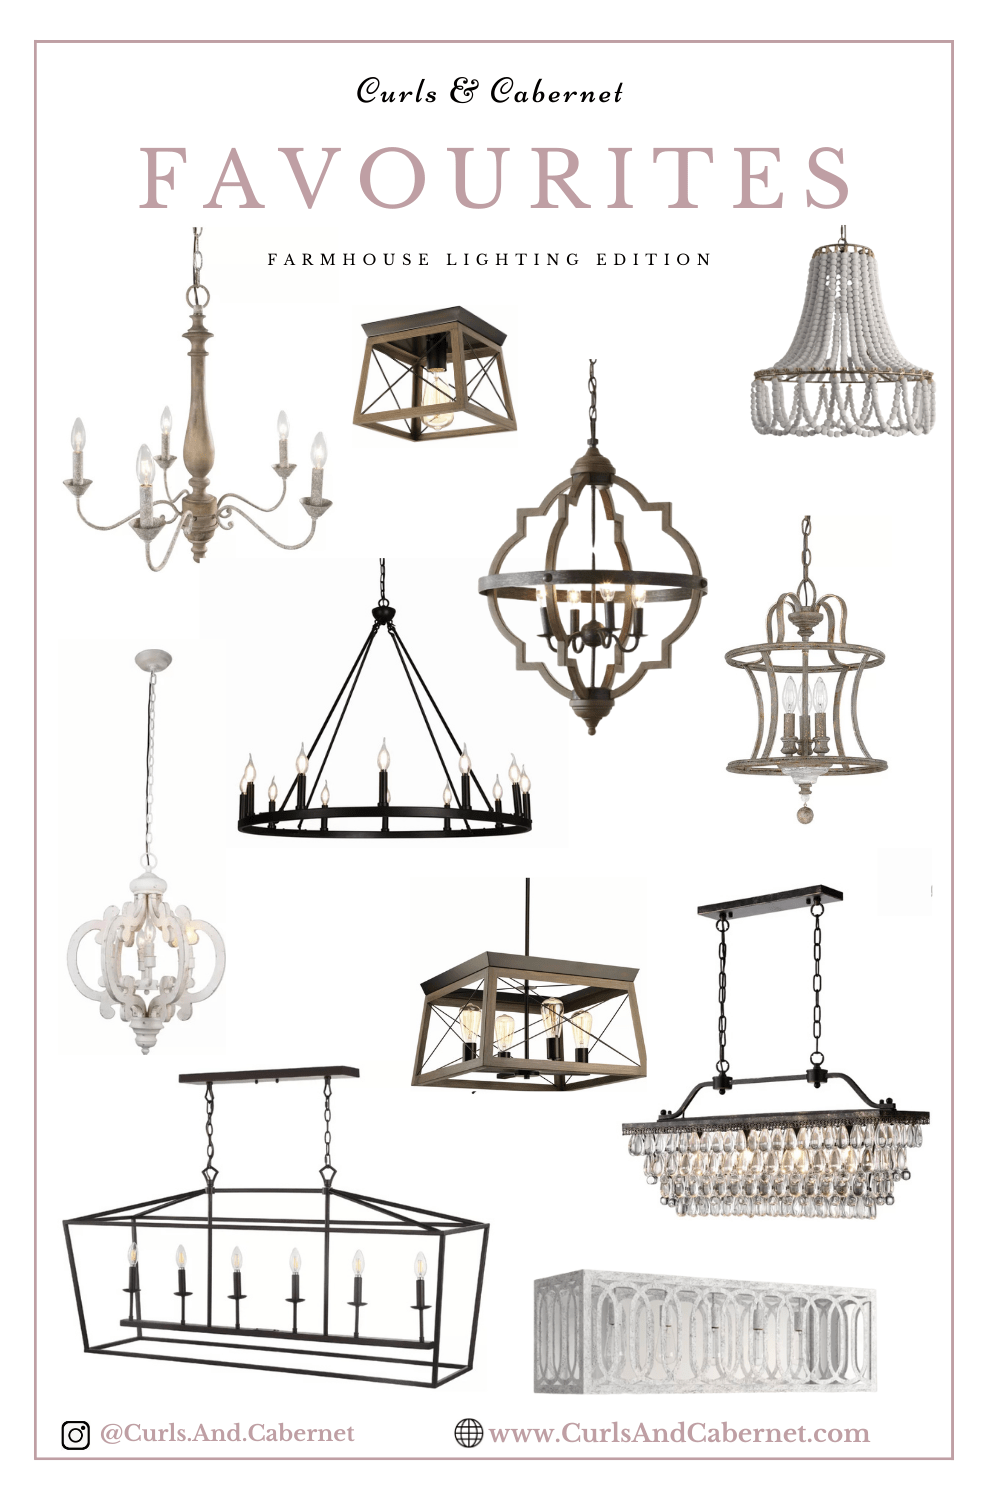 Favourite: Affordable Rustic Chic, Farmhouse Glam Lighting 2021!